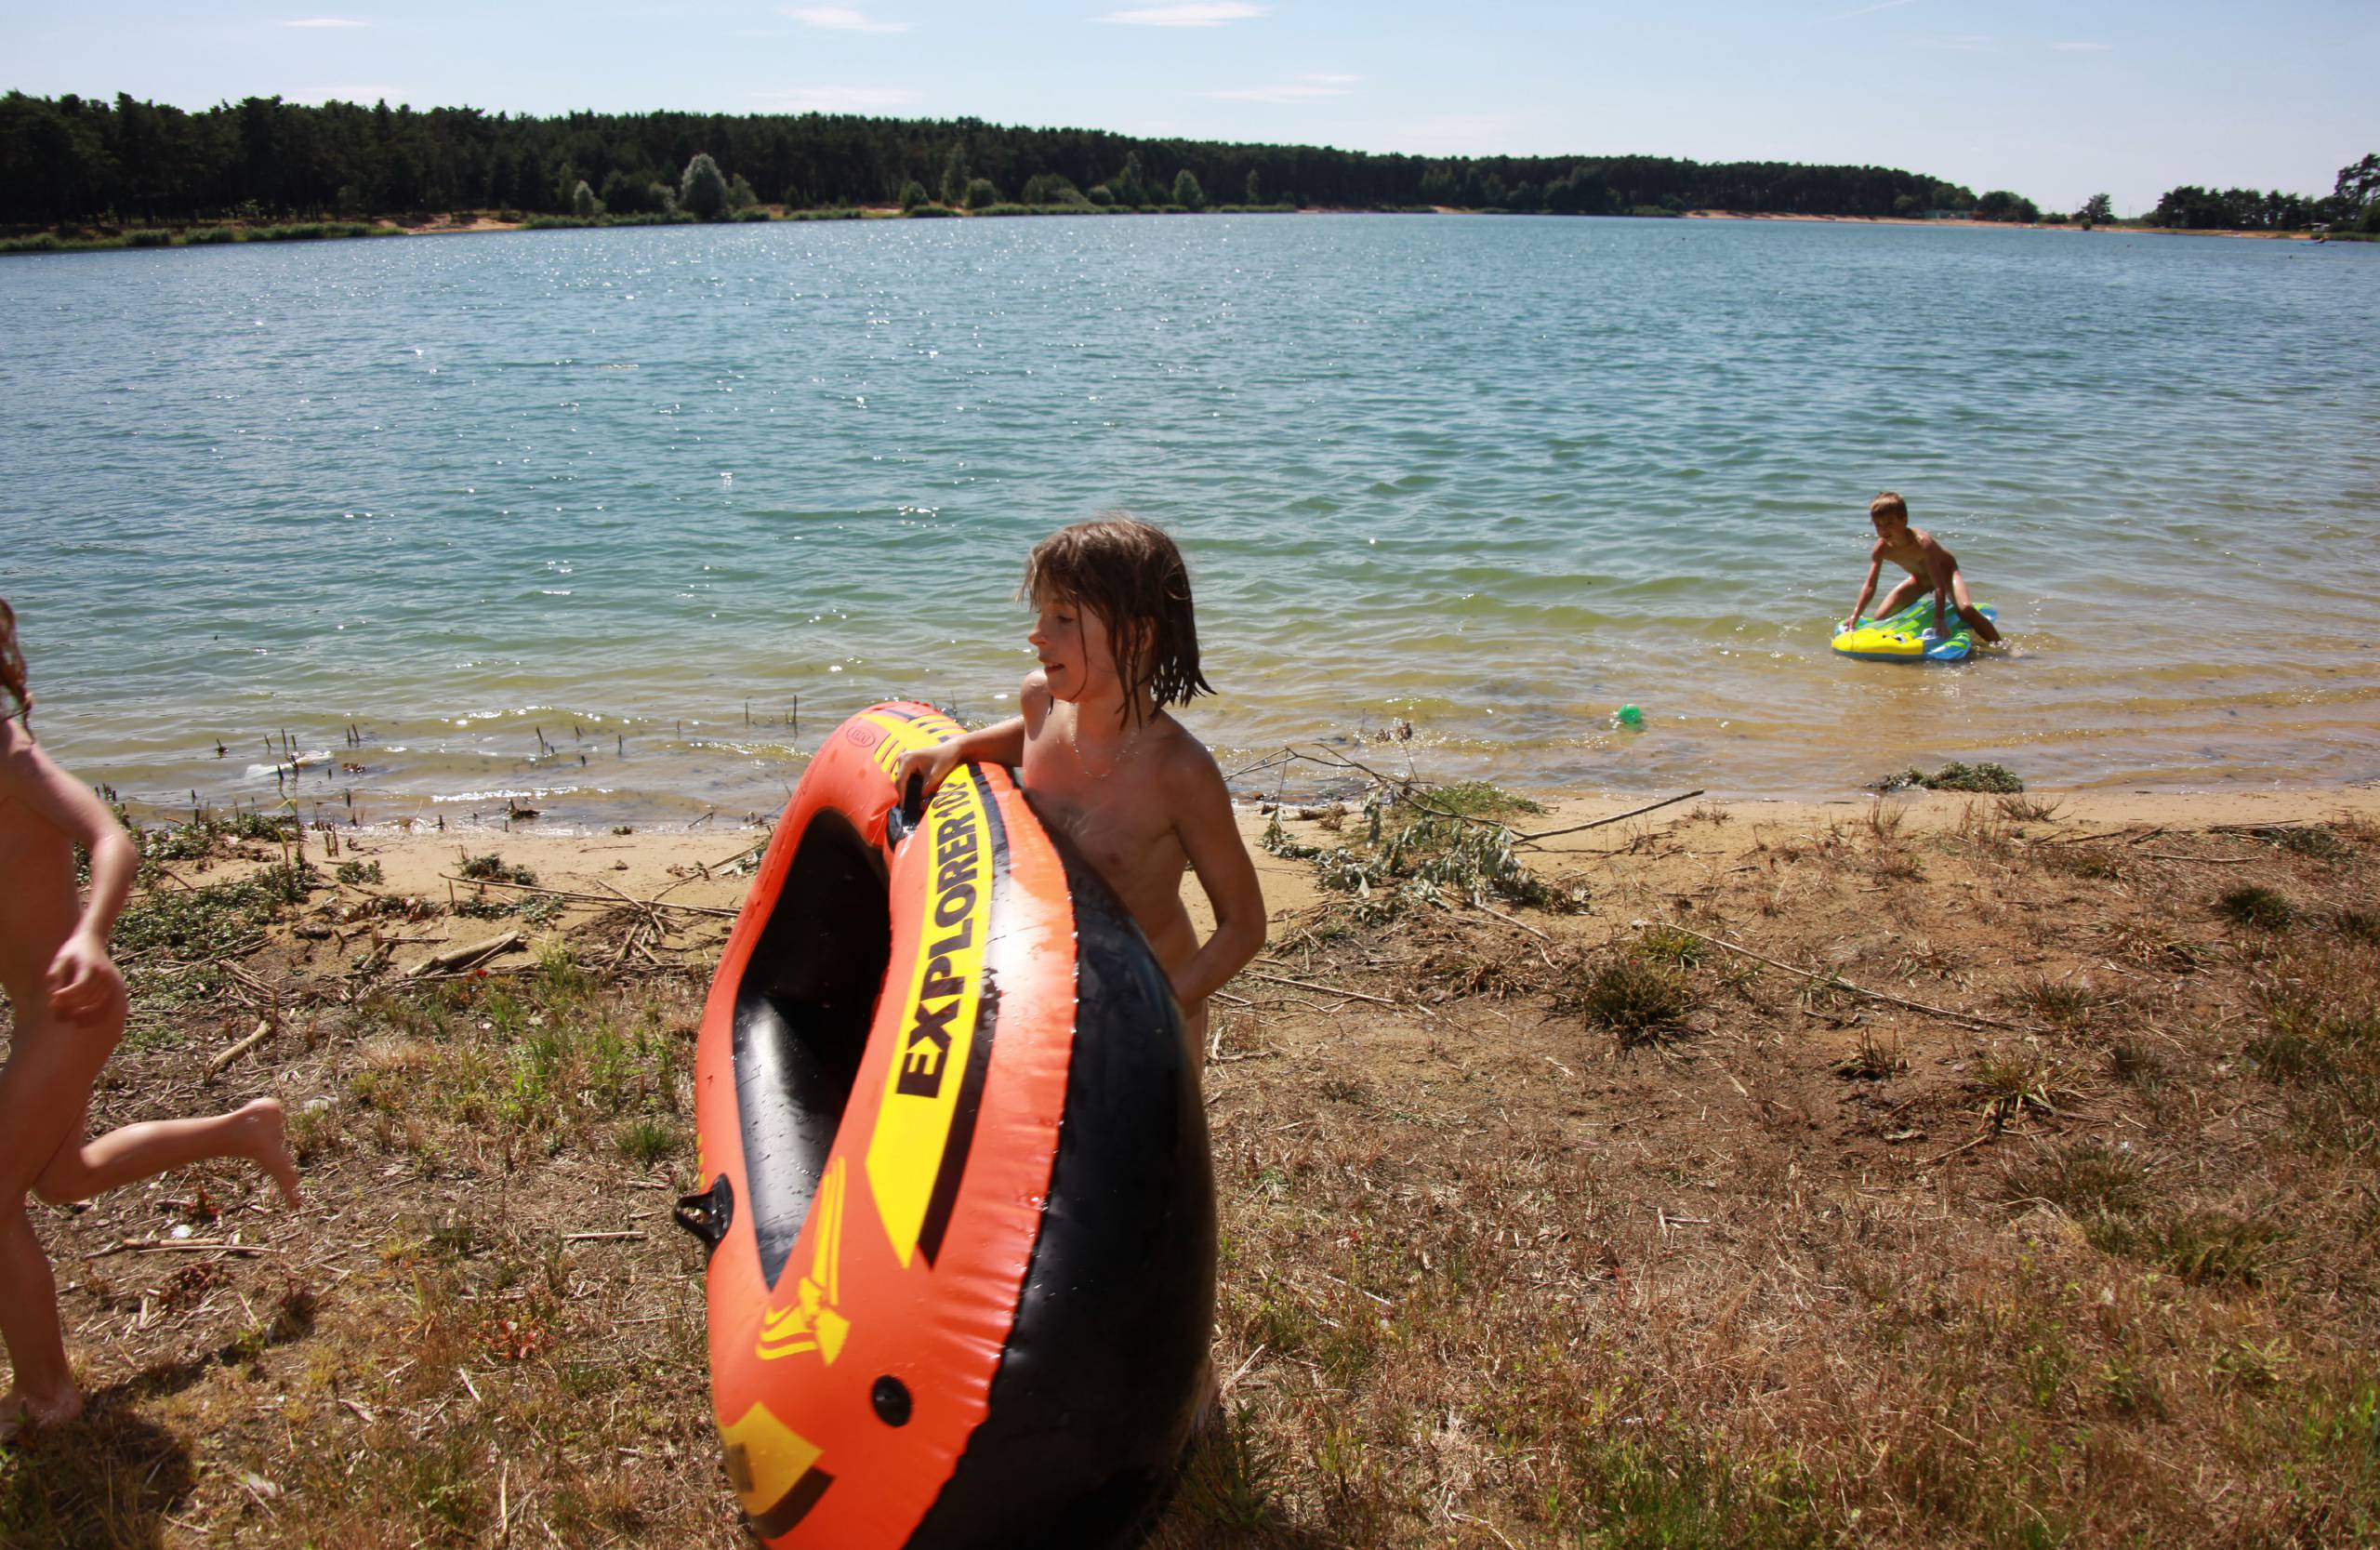 Pure Nudism Images Summer Sun Nudists - 1